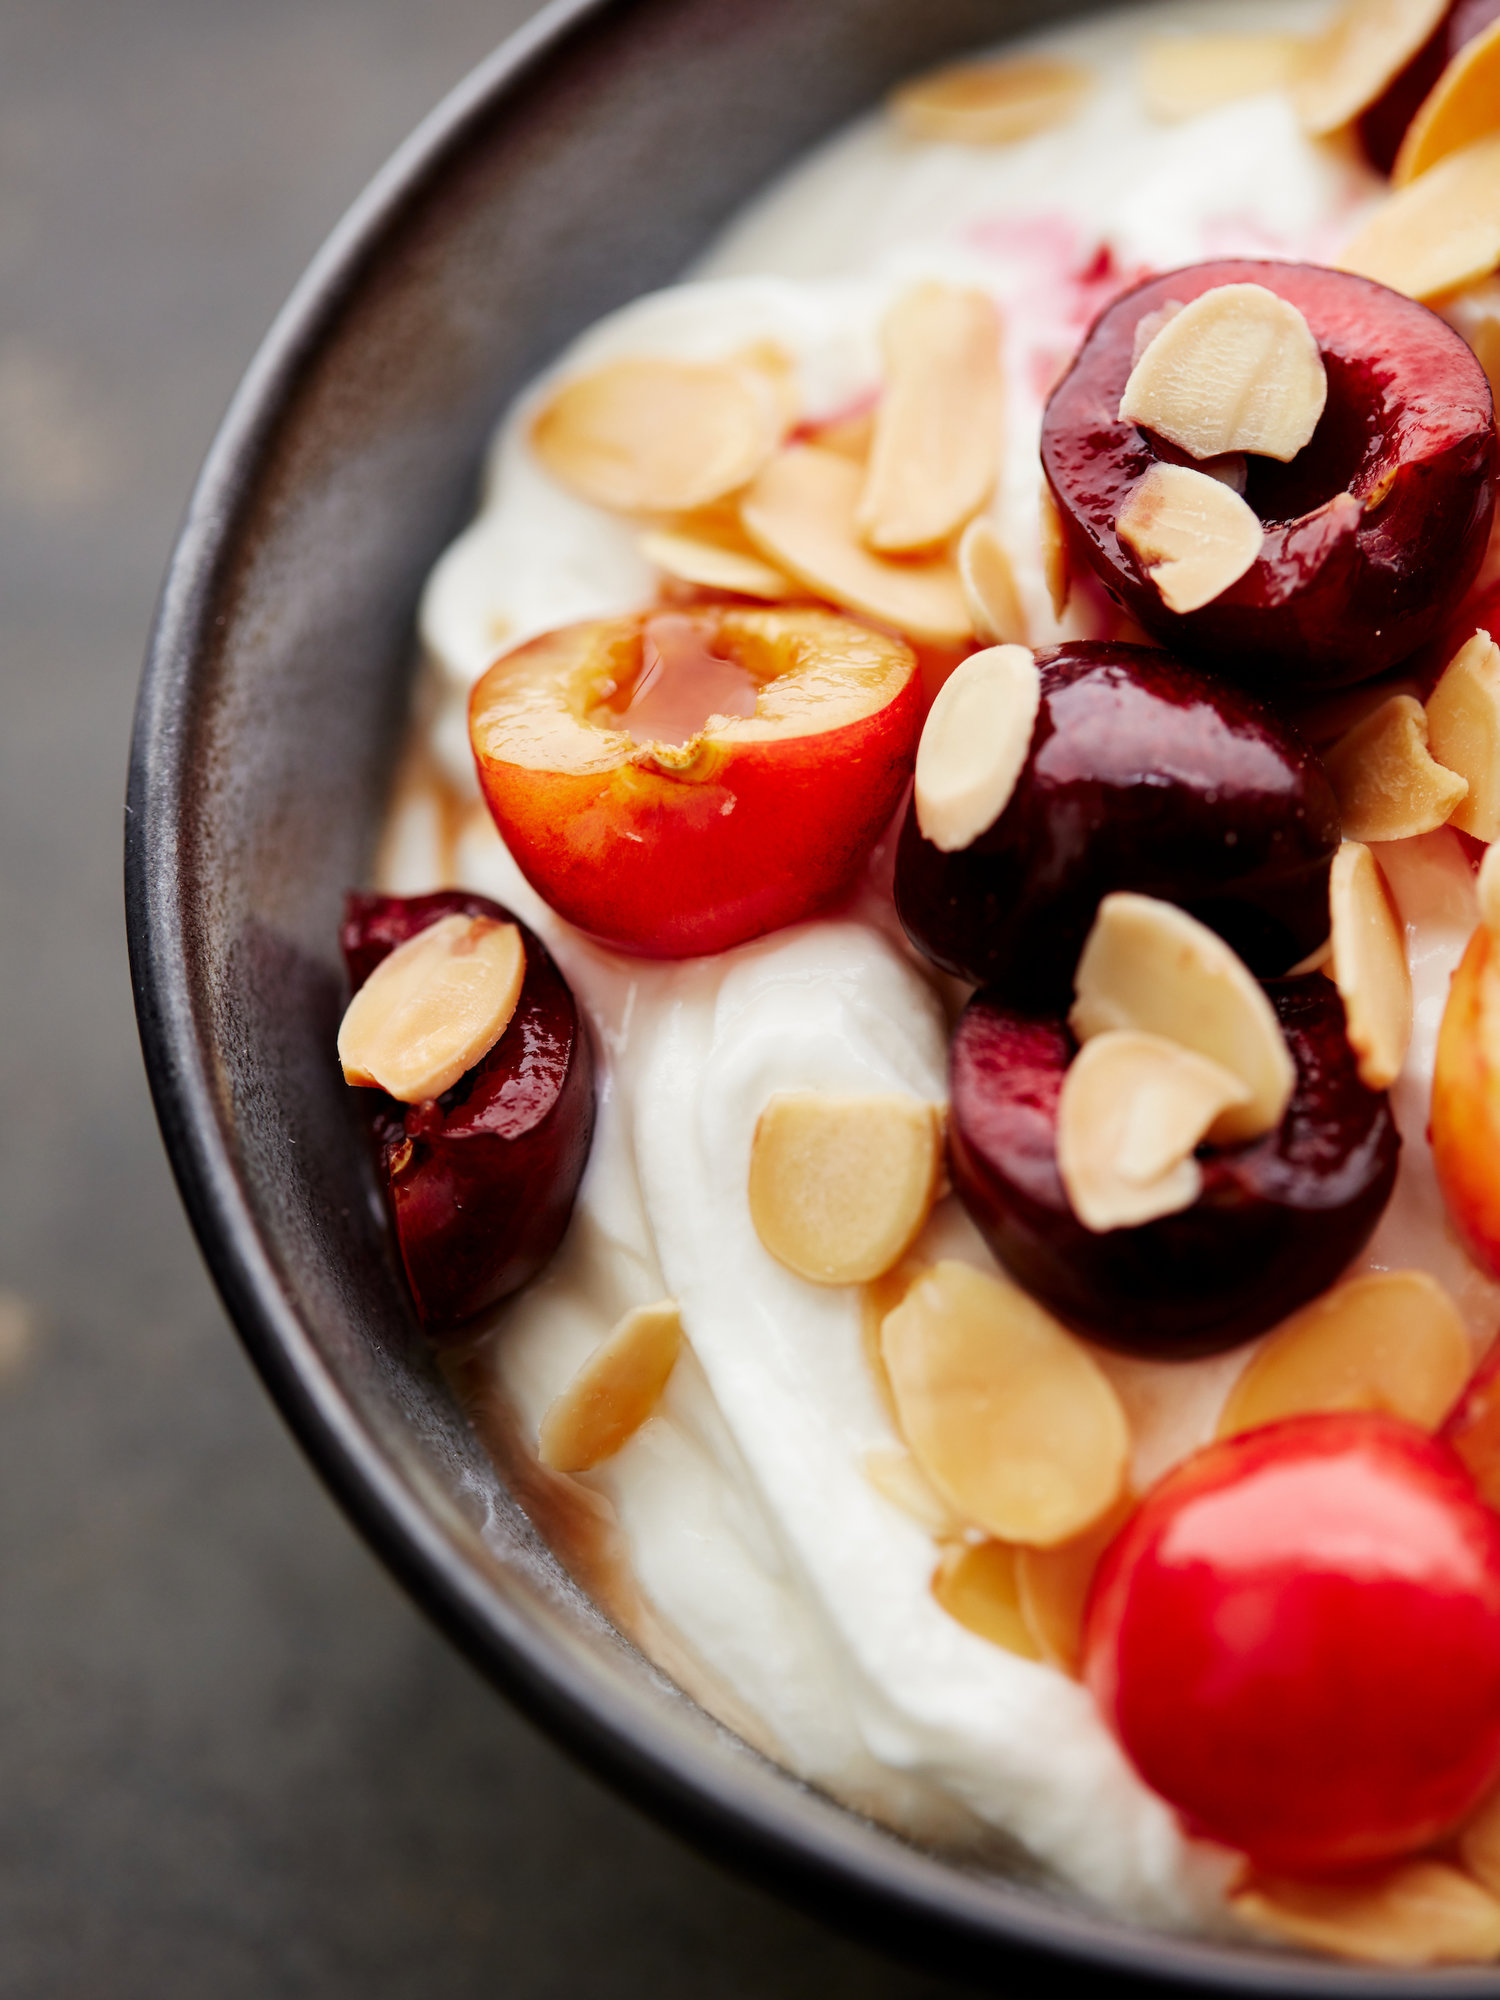 20160719_DrJulia_Yogurt-Cherries-Almonds054.jpg